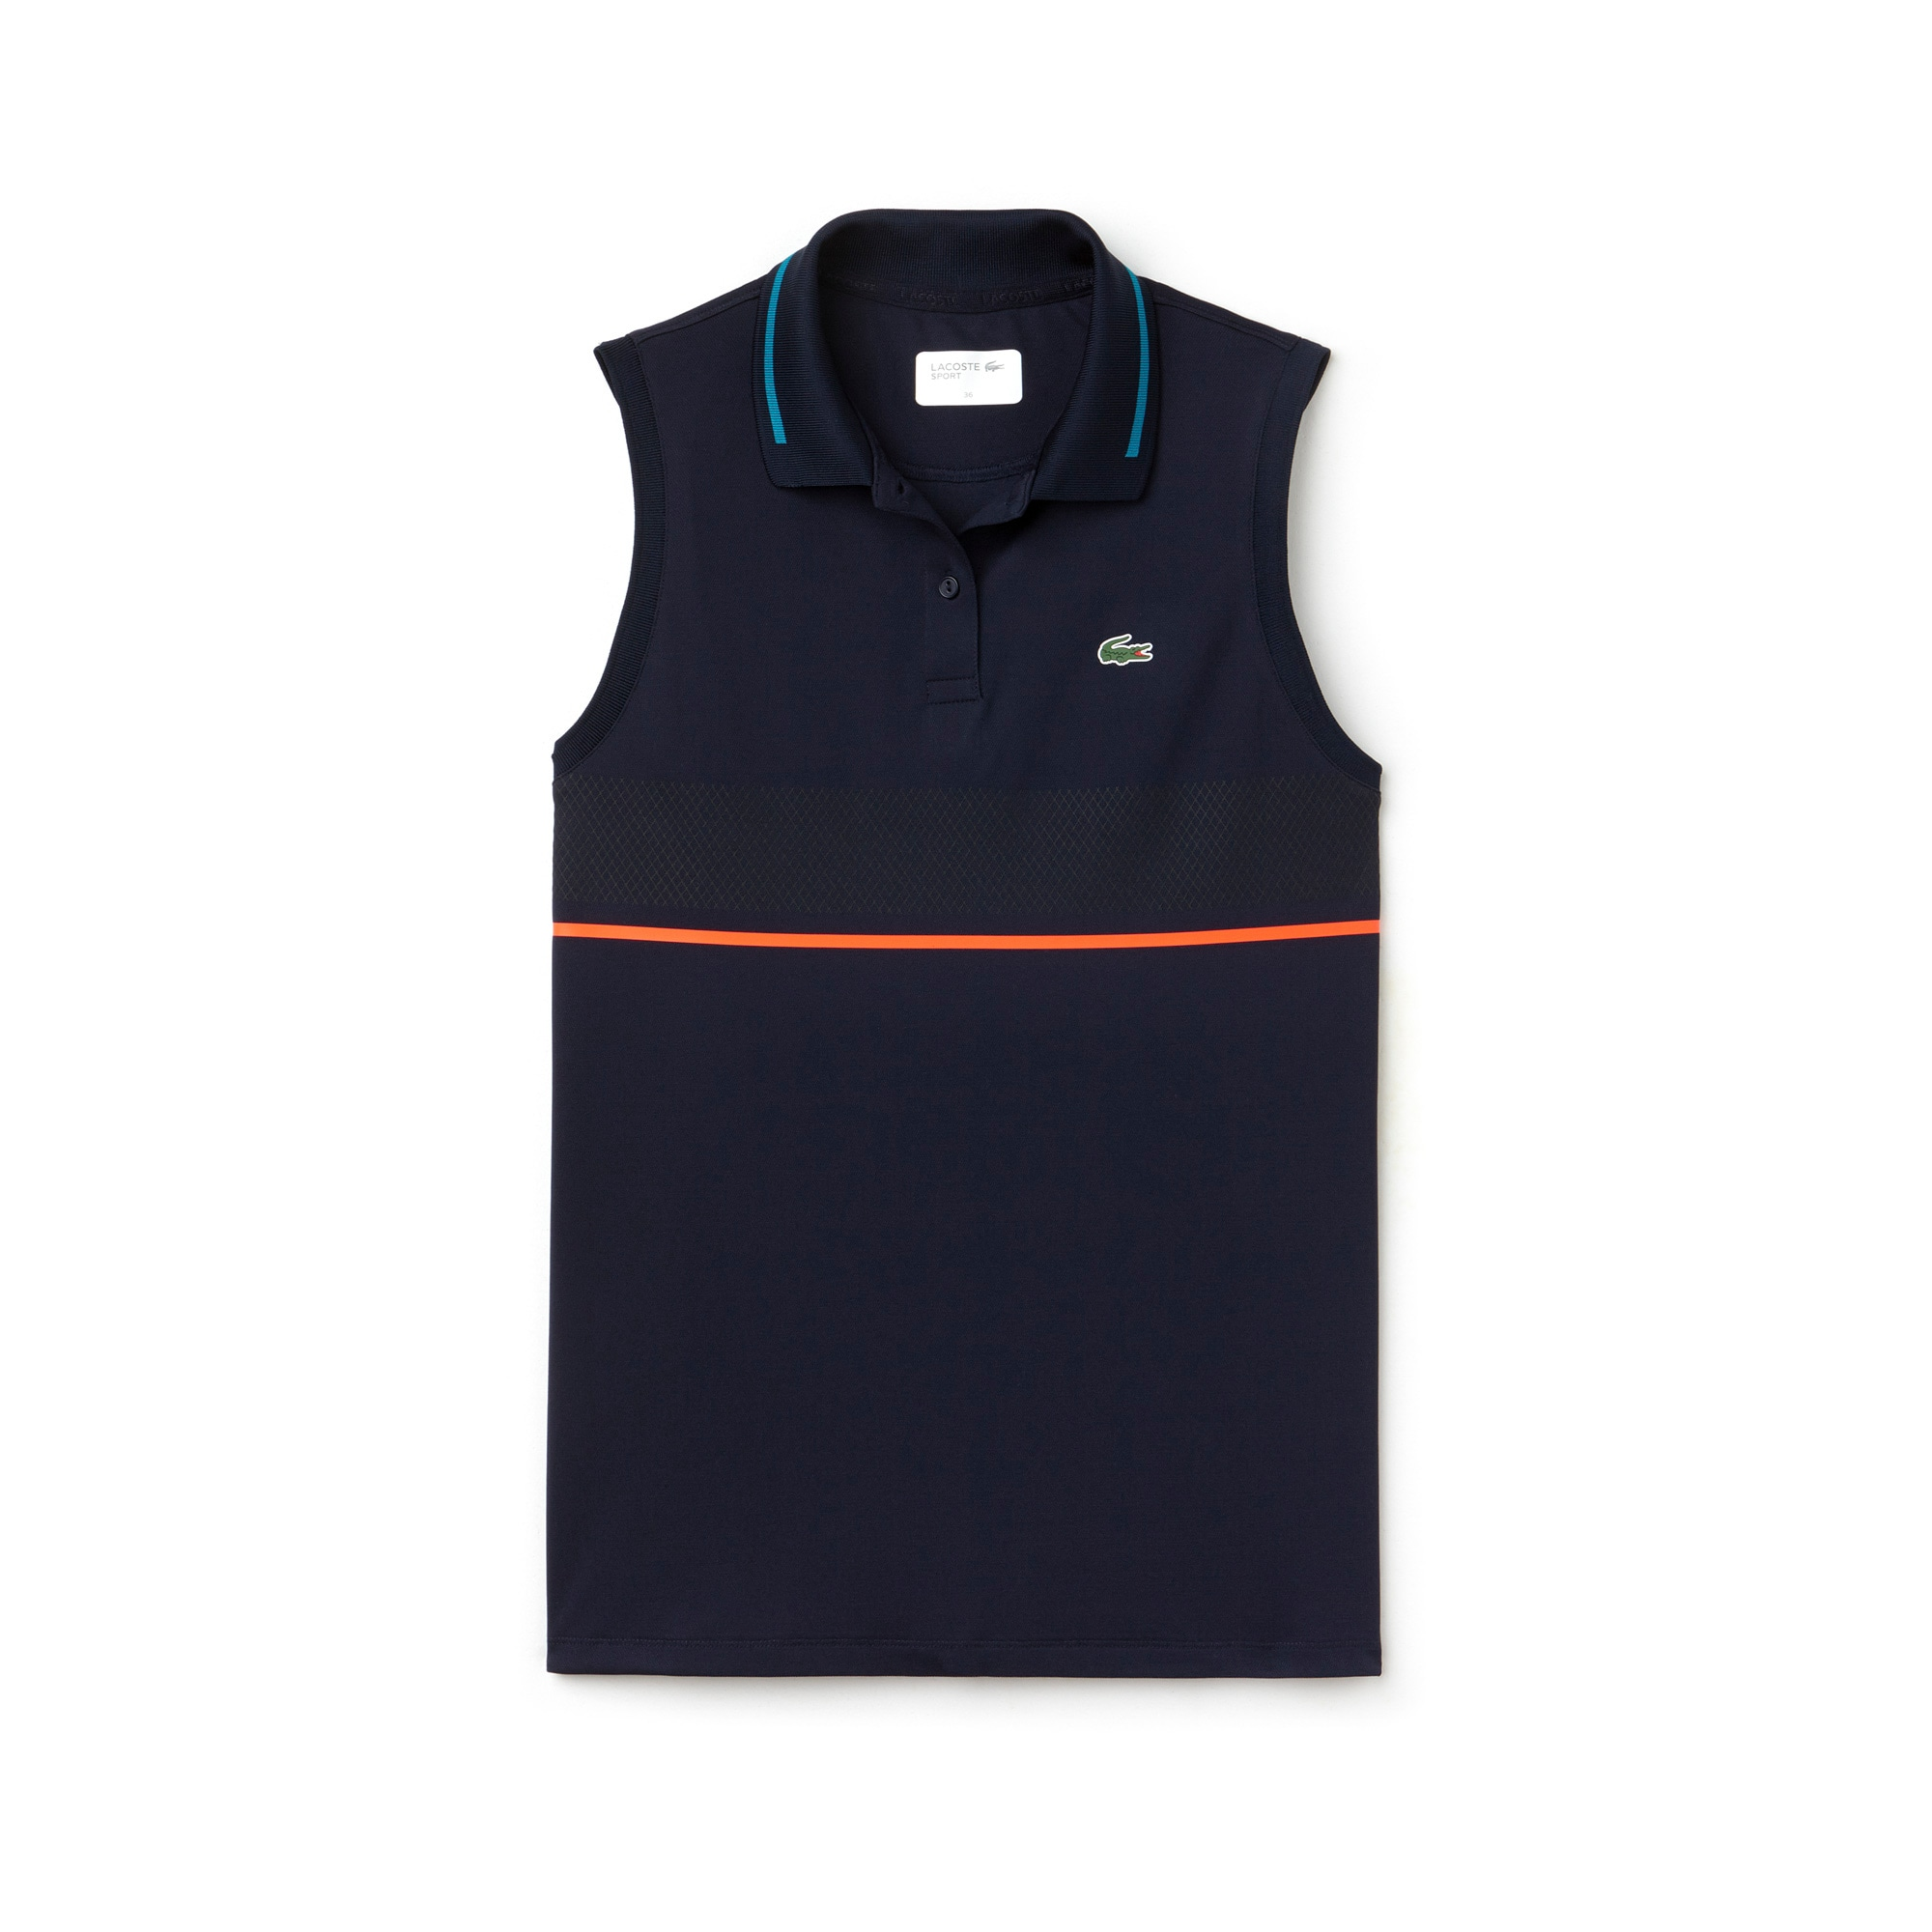 Women's SPORT French Open Piqué Tennis Tank Top